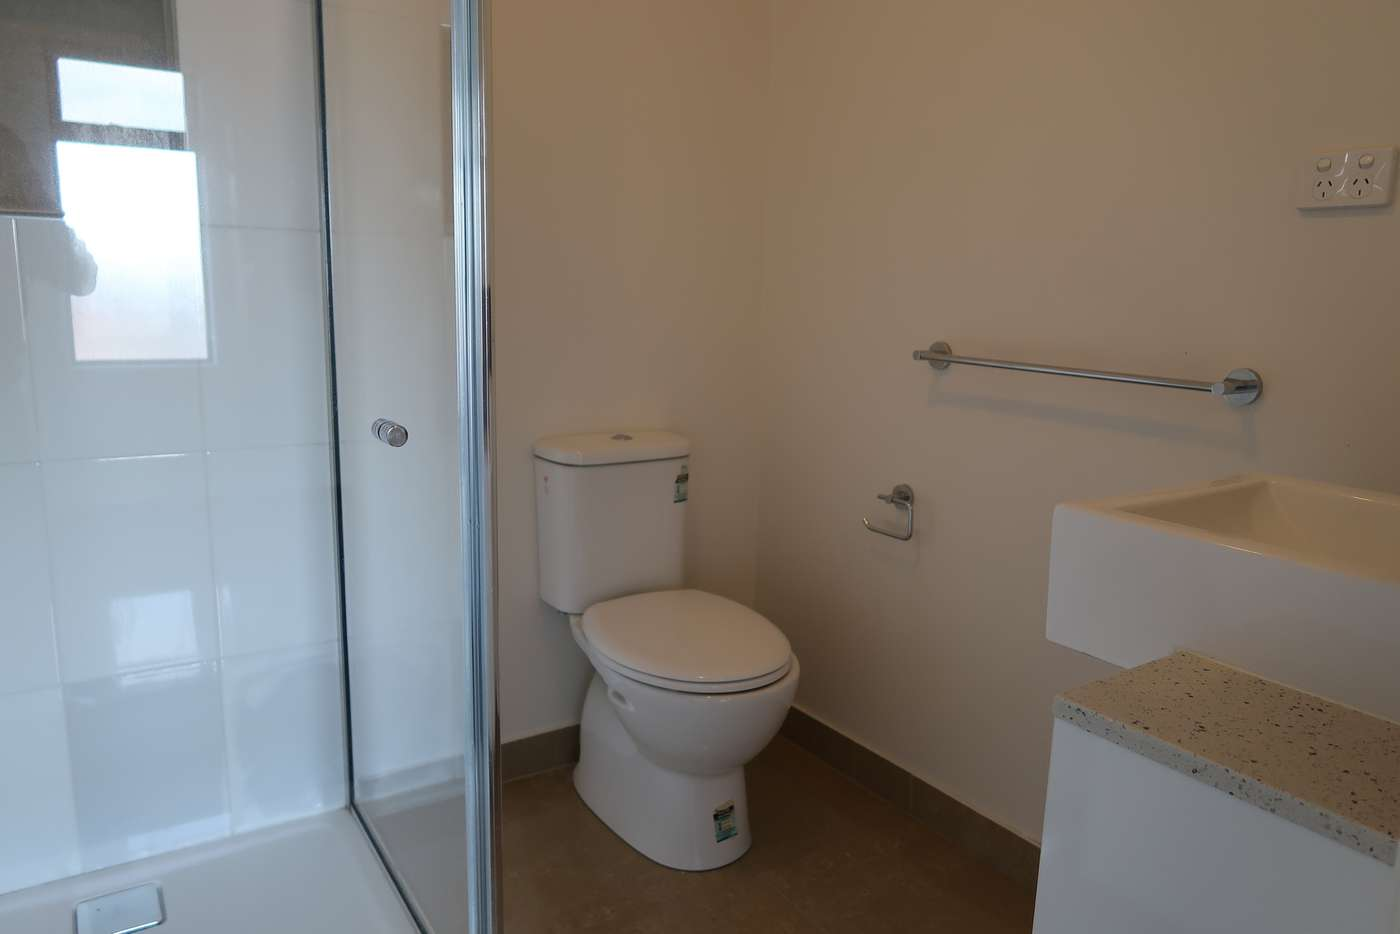 Sixth view of Homely townhouse listing, 7/33 New Street, Dandenong VIC 3175